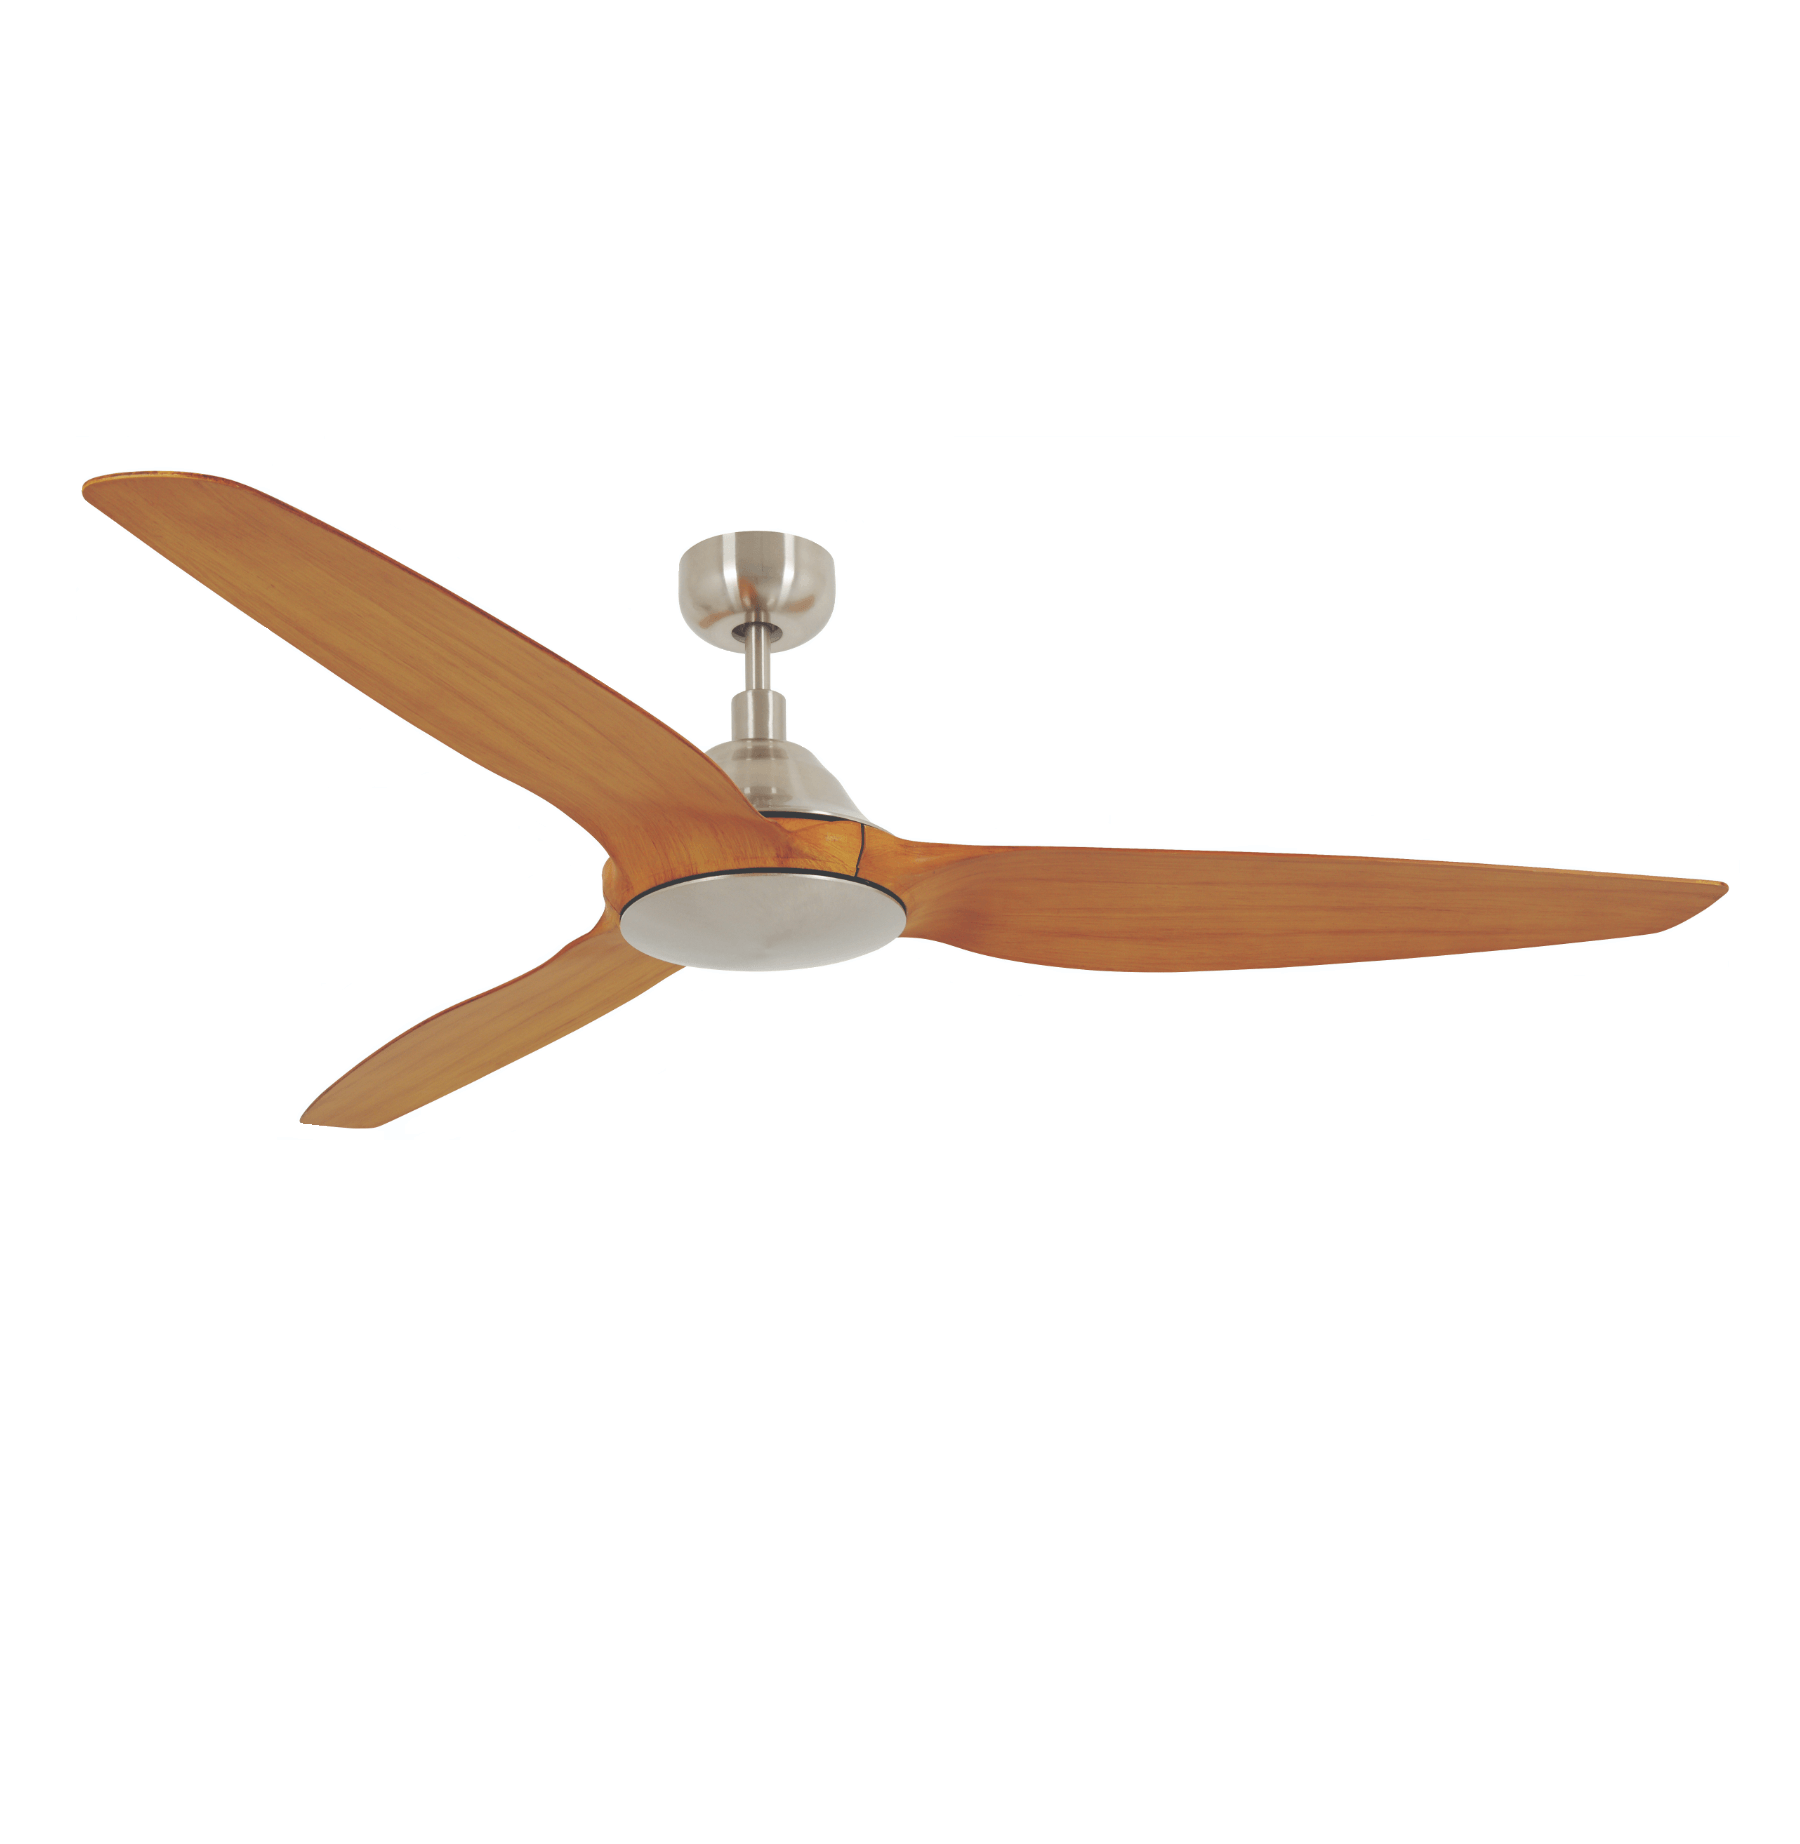 Stropný ventilátor Lucci Air Airfusion Type A 211010